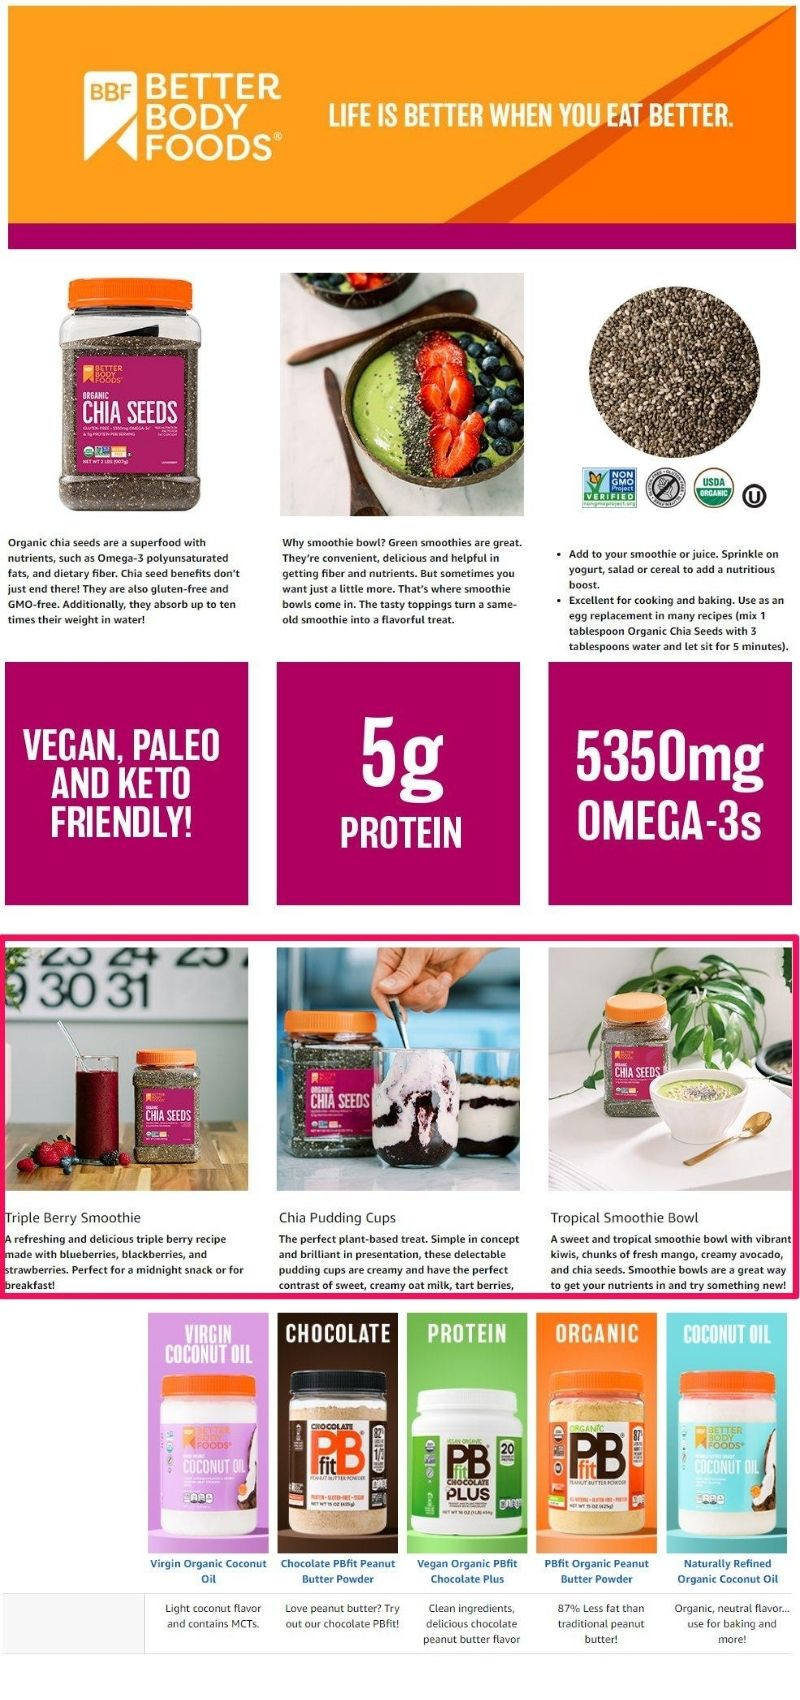 How Better Body Foods uses a+ images